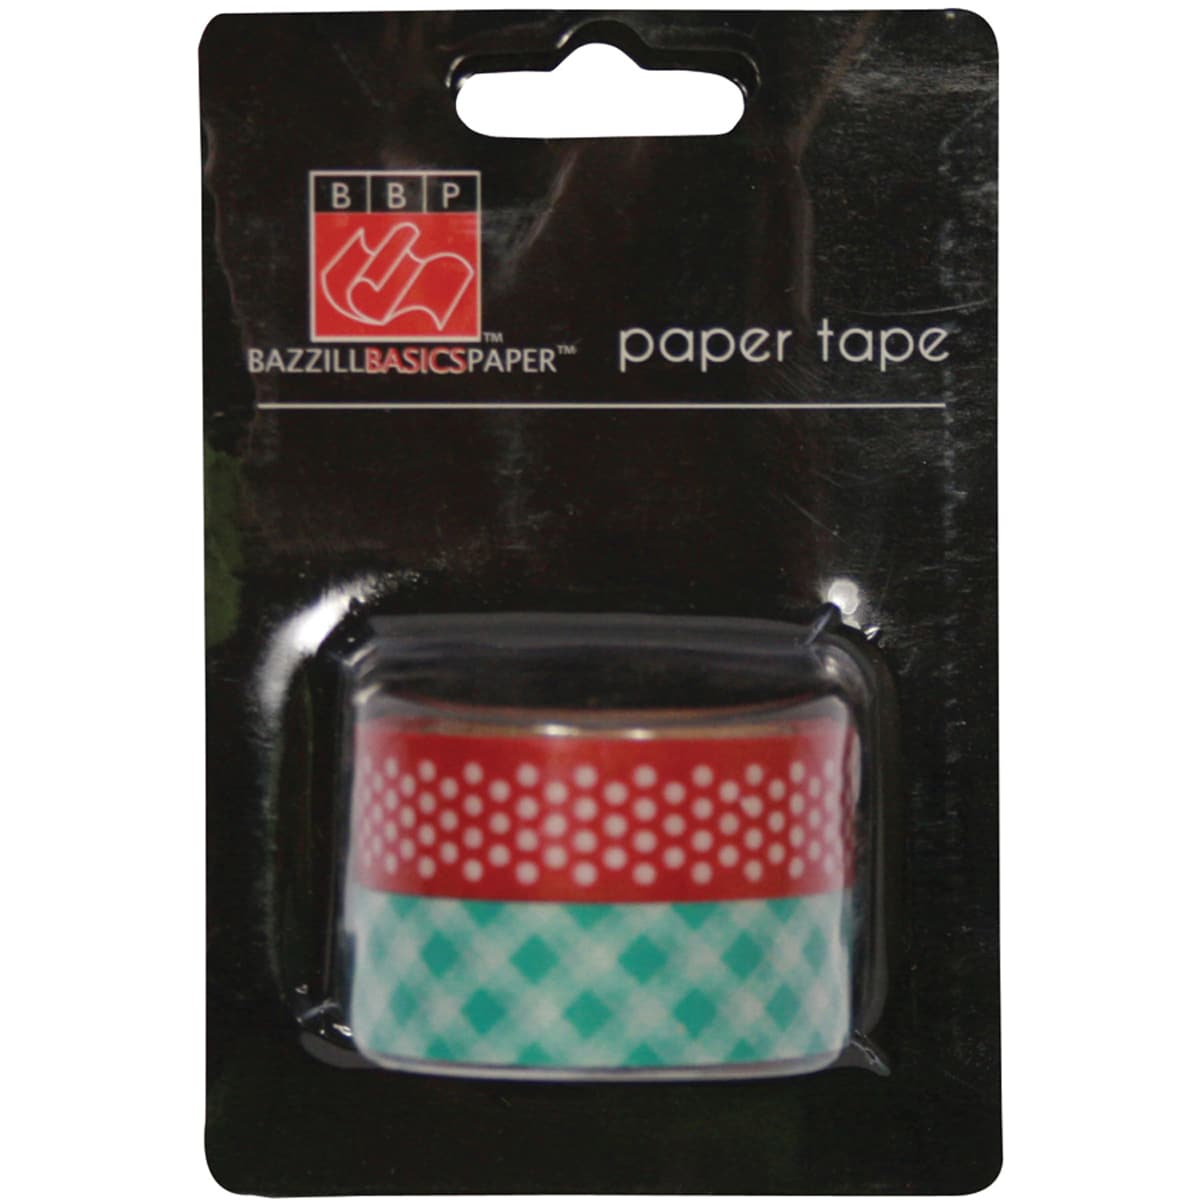 Avalon Paper Tape (Pack of 2)